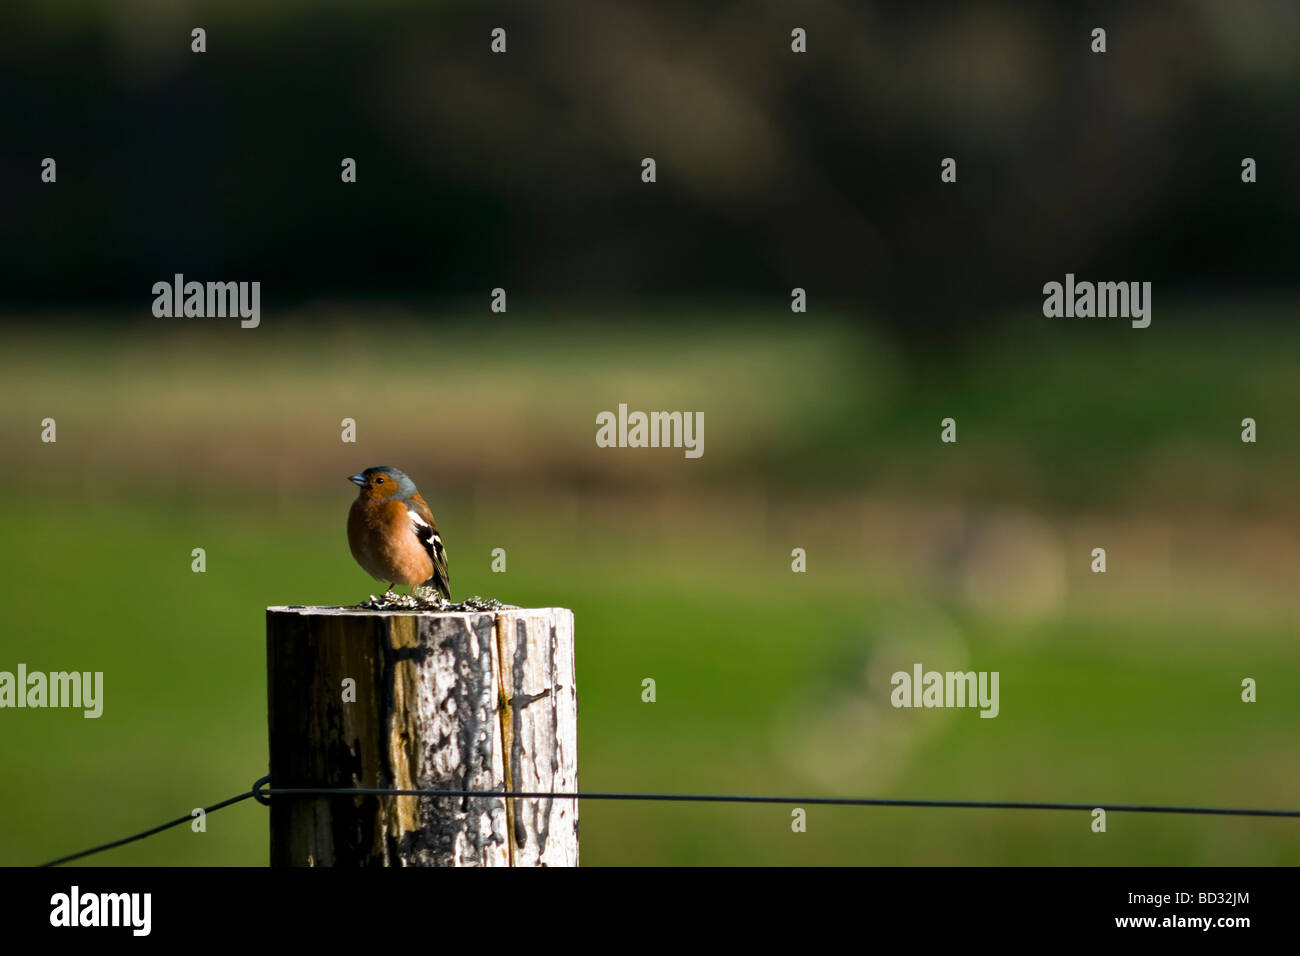 Male chaffinch bird sat on fence post, taken in Glen Cassley in Northern Scotland - Stock Image